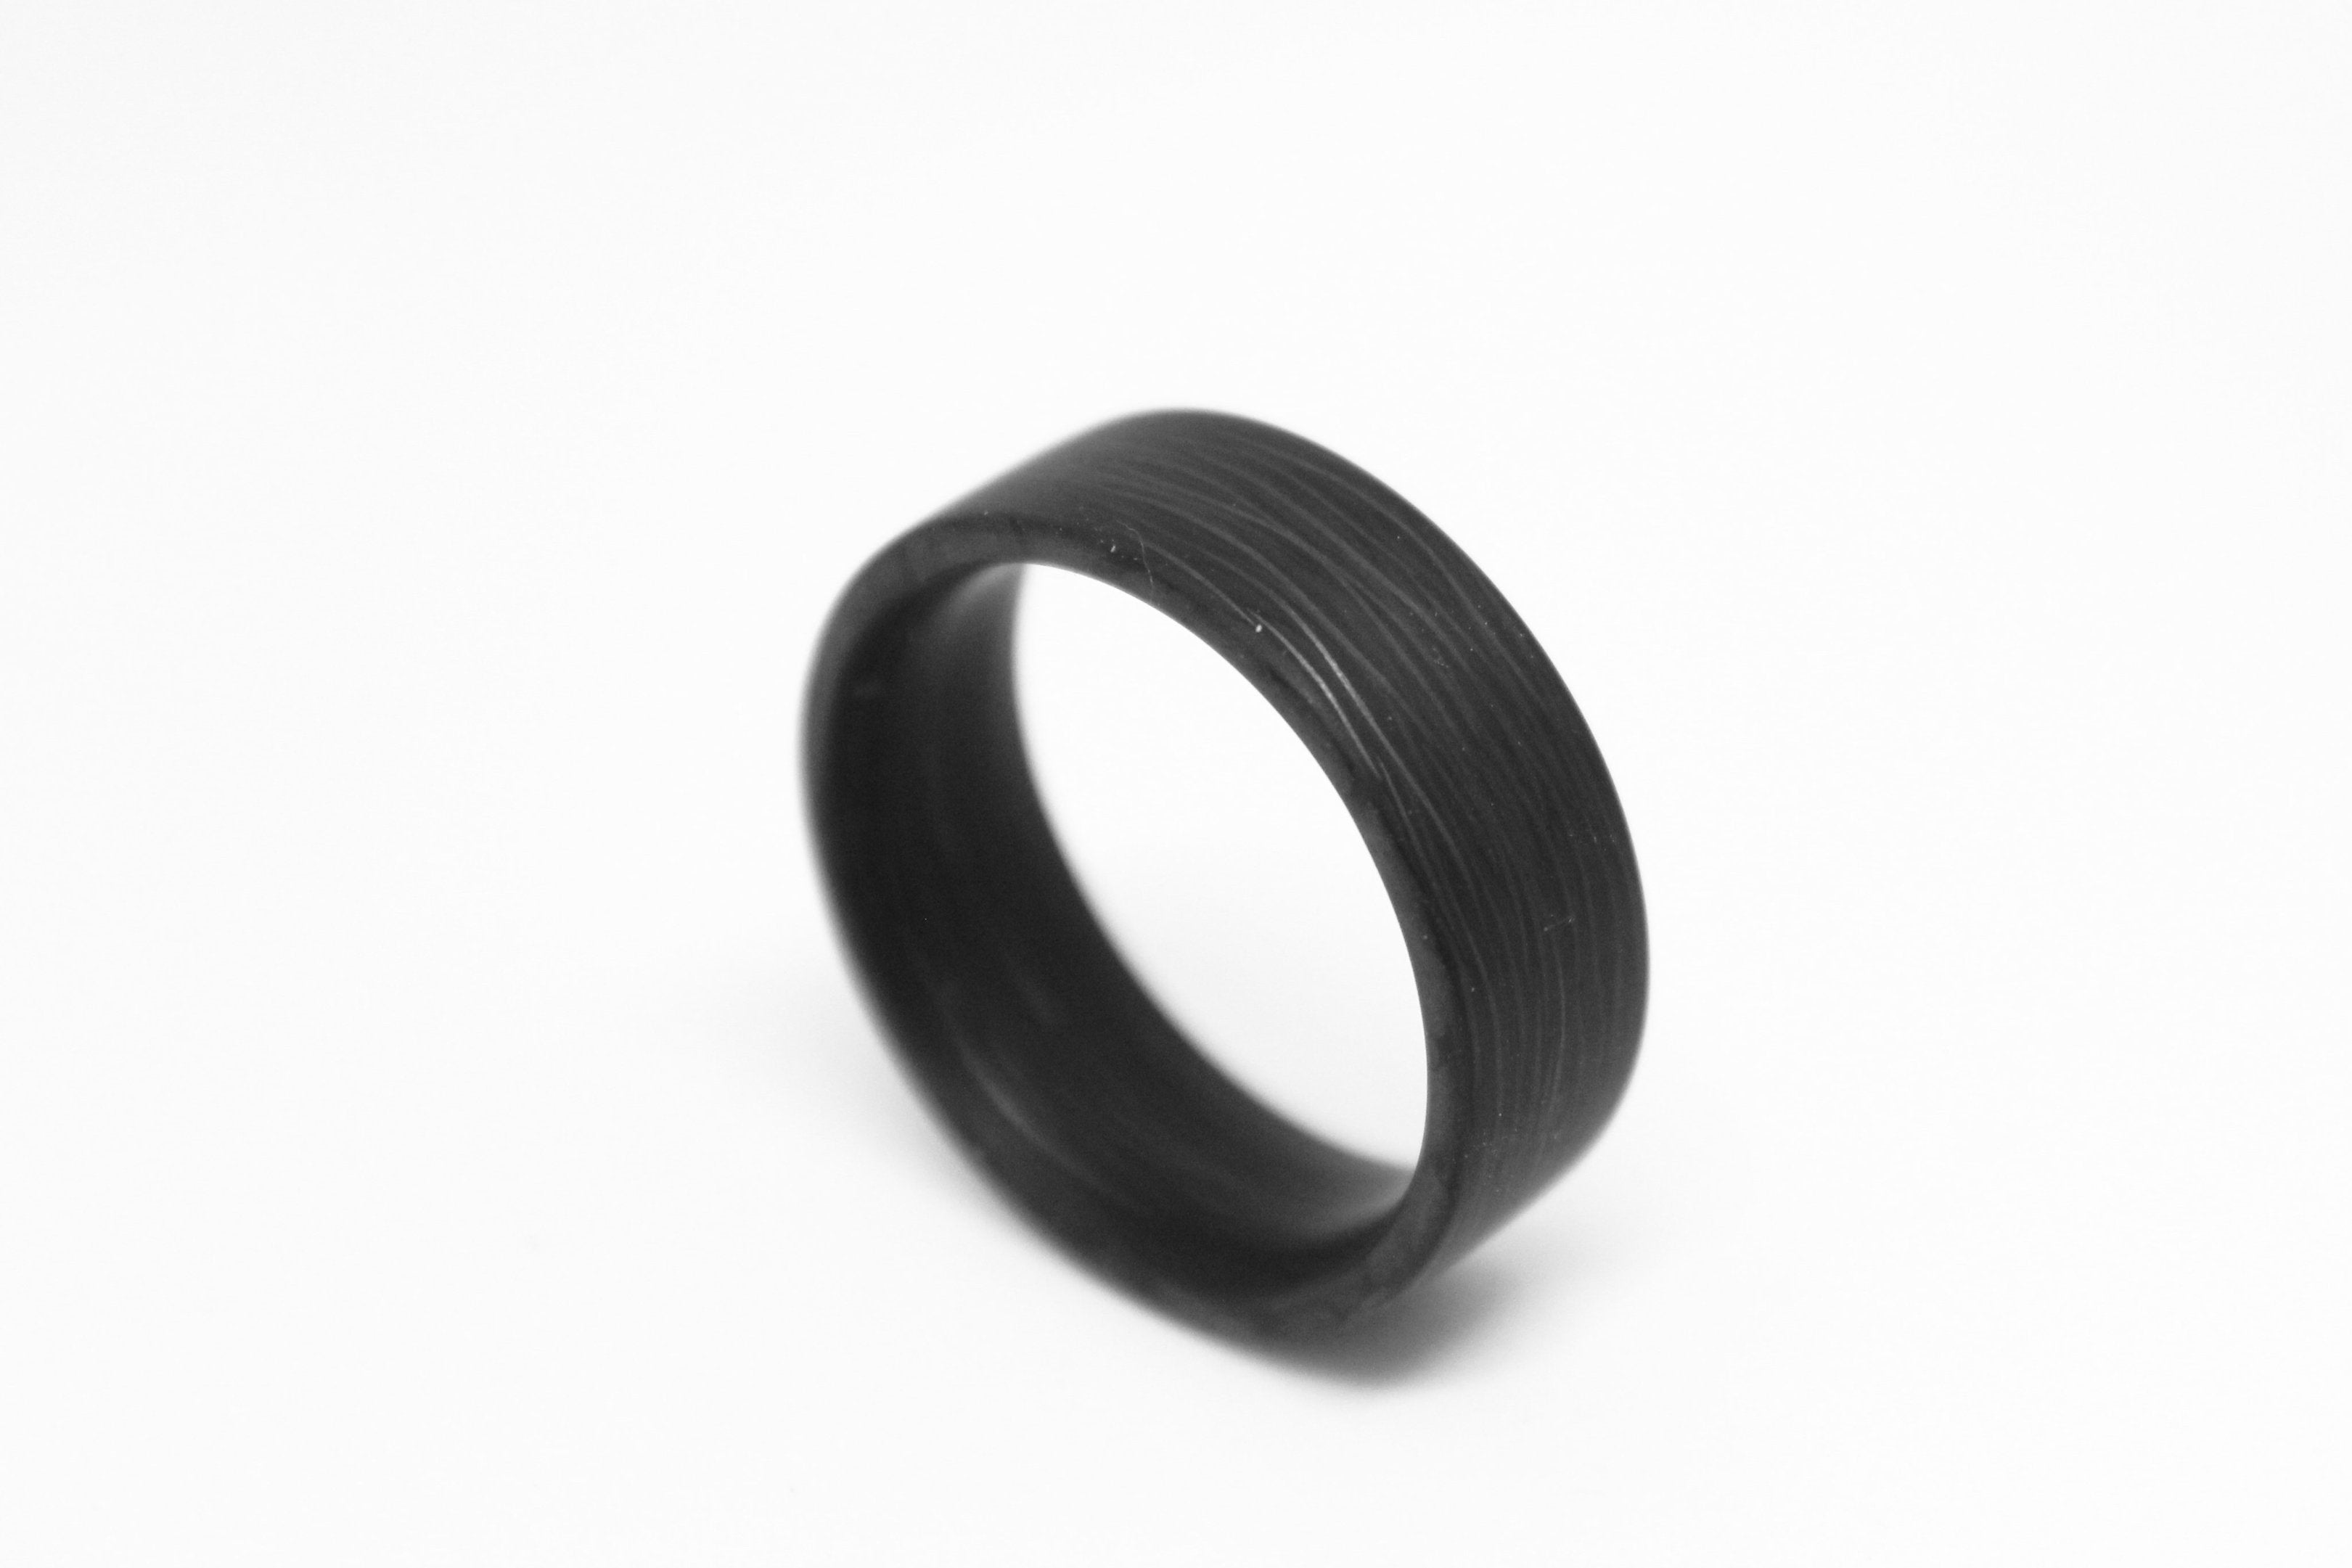 Size 12.5 Space X Carbon Fiber Ring